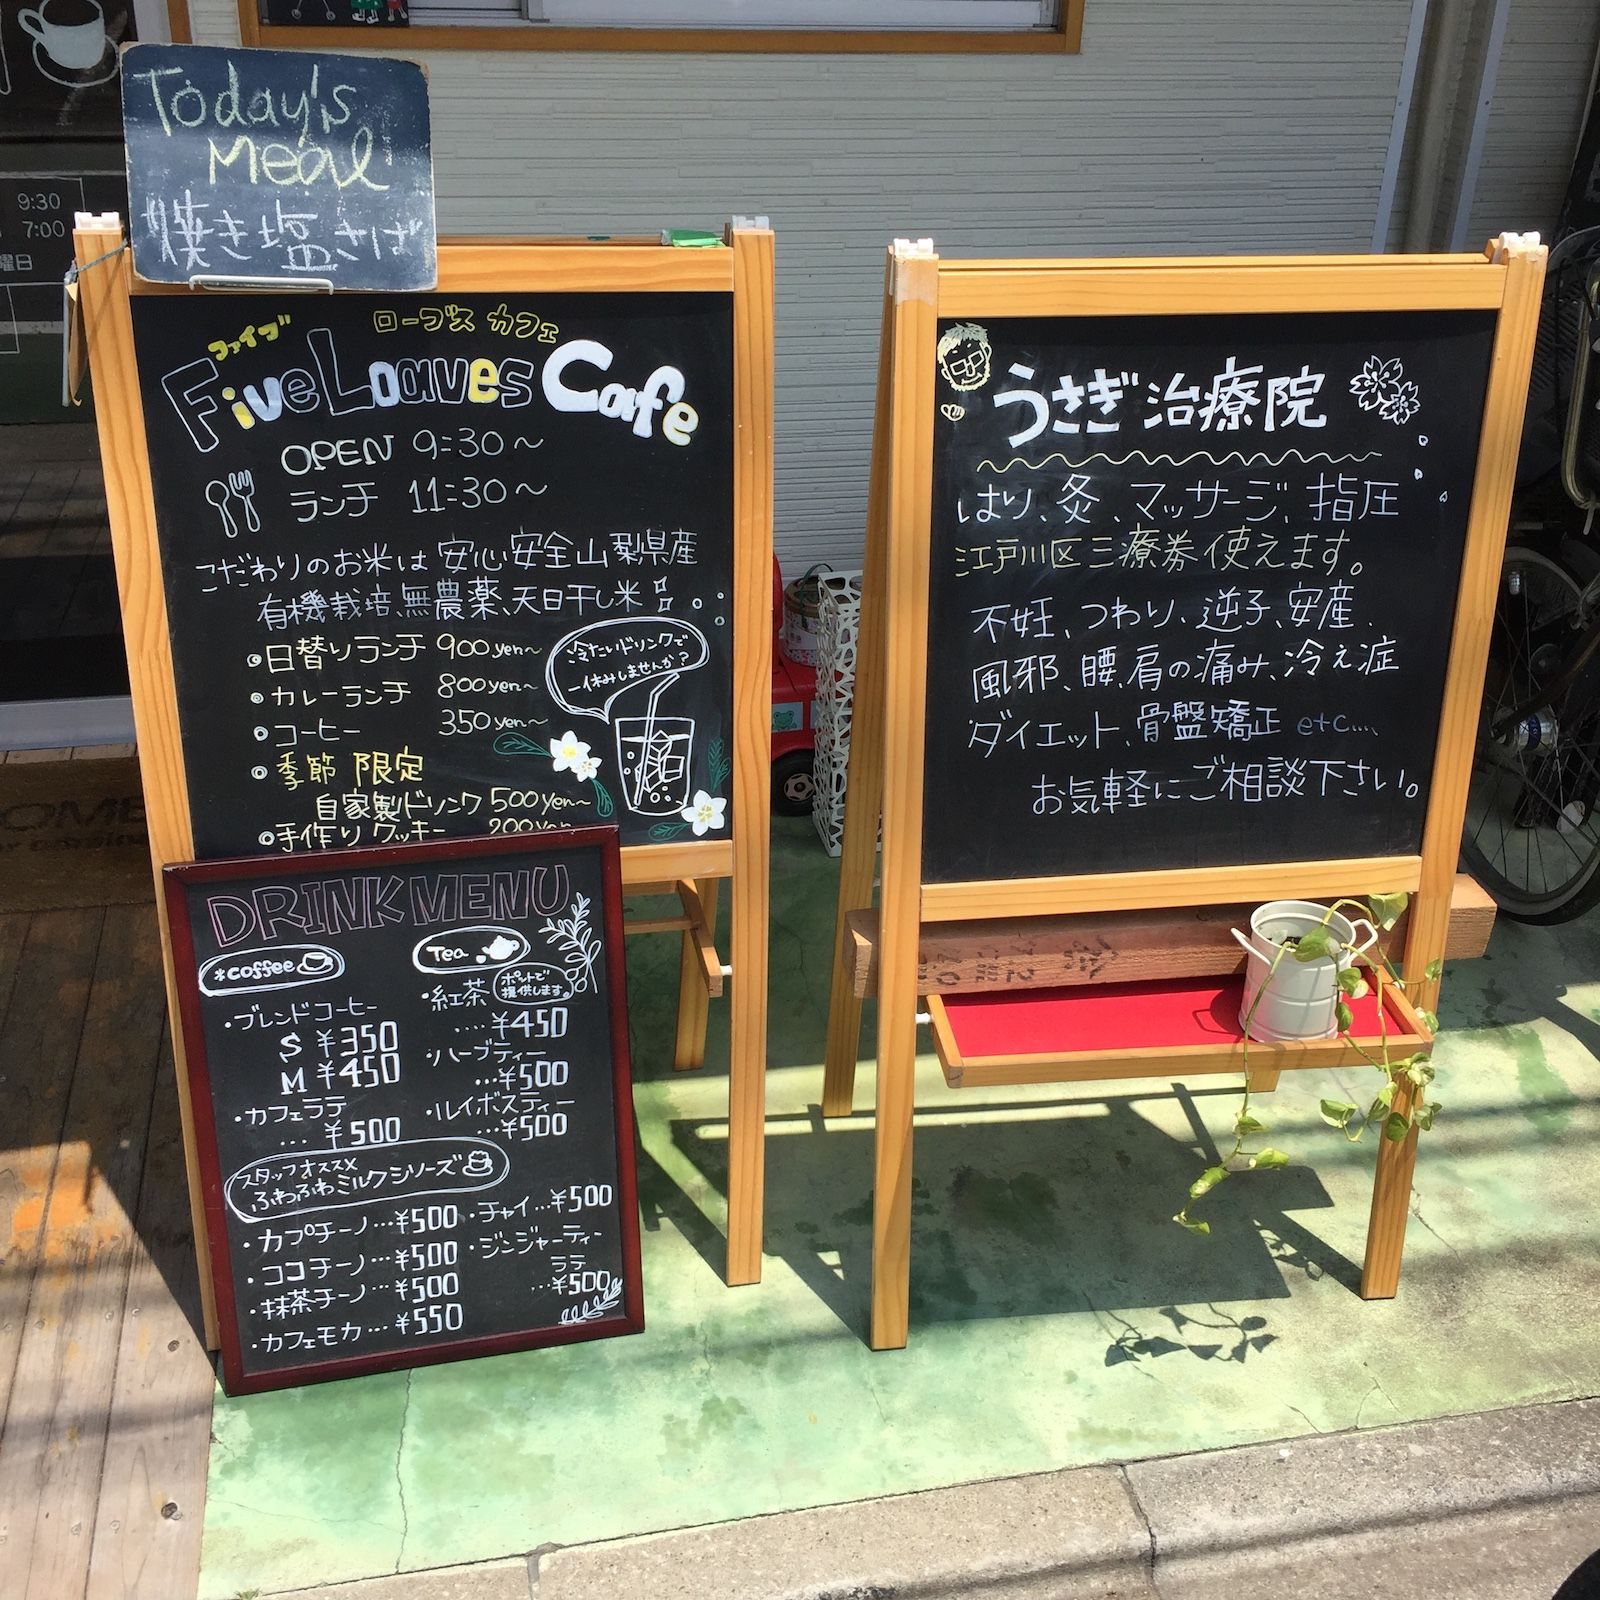 Five Loaves Cafe 看板